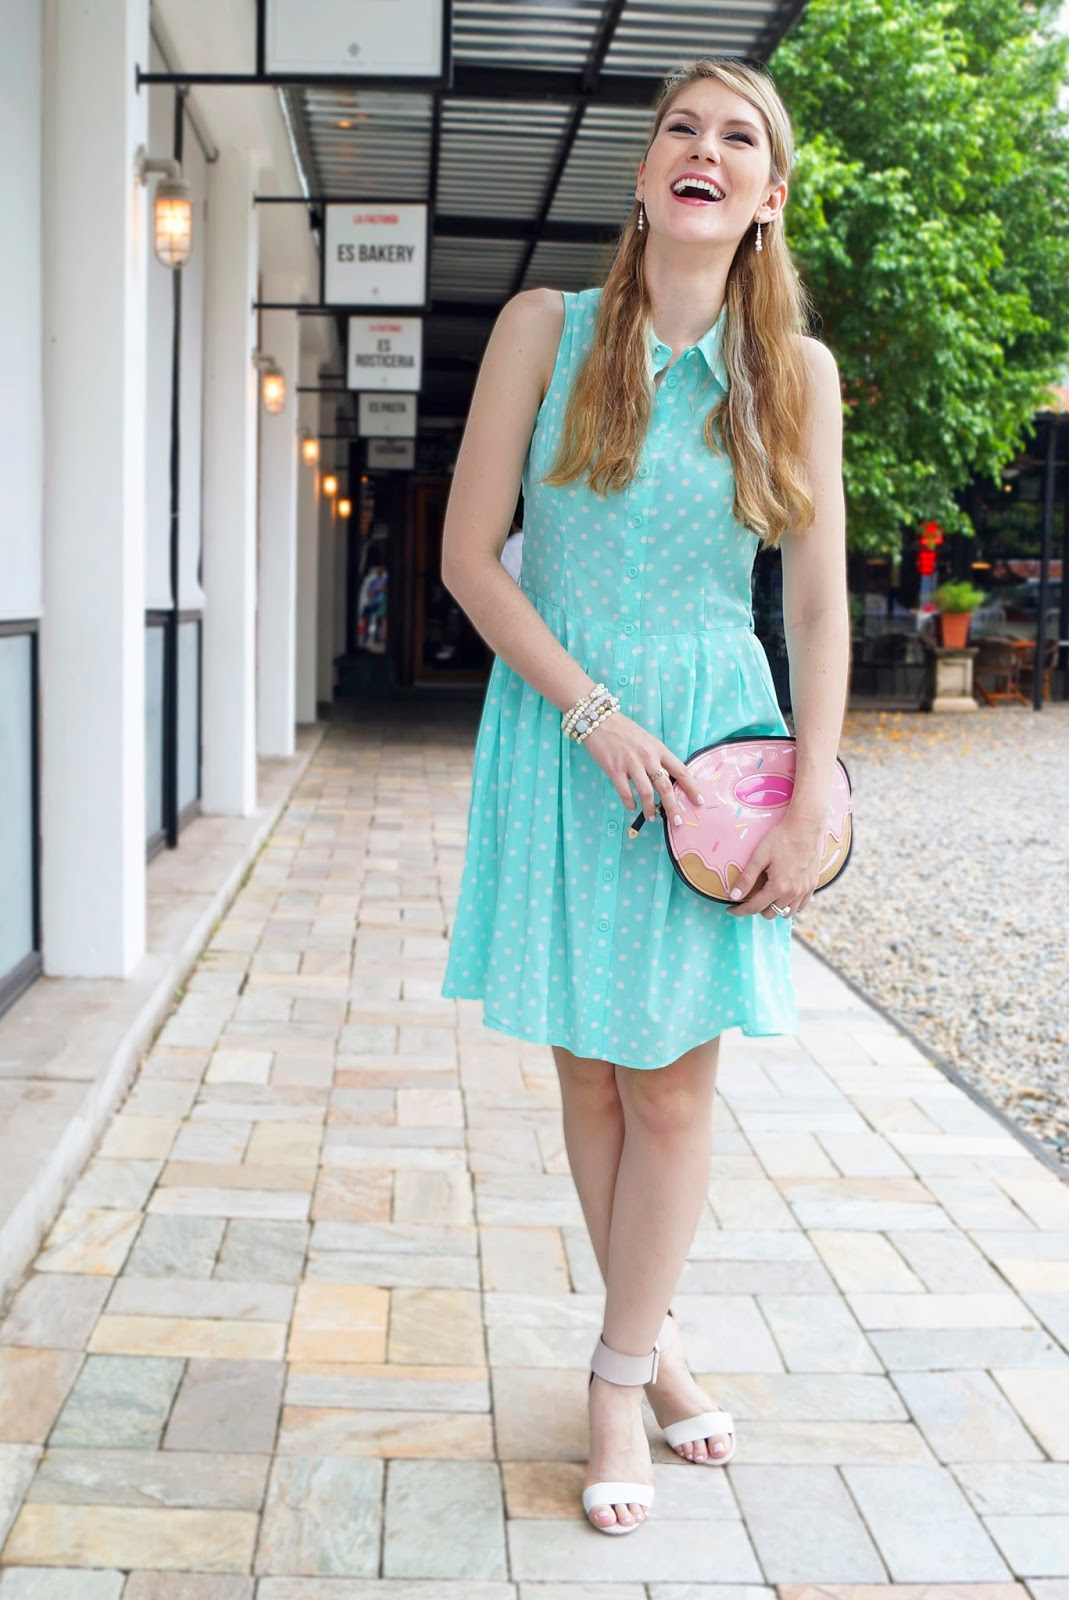 Cute Polka Dot Dress Outfit for Spring!